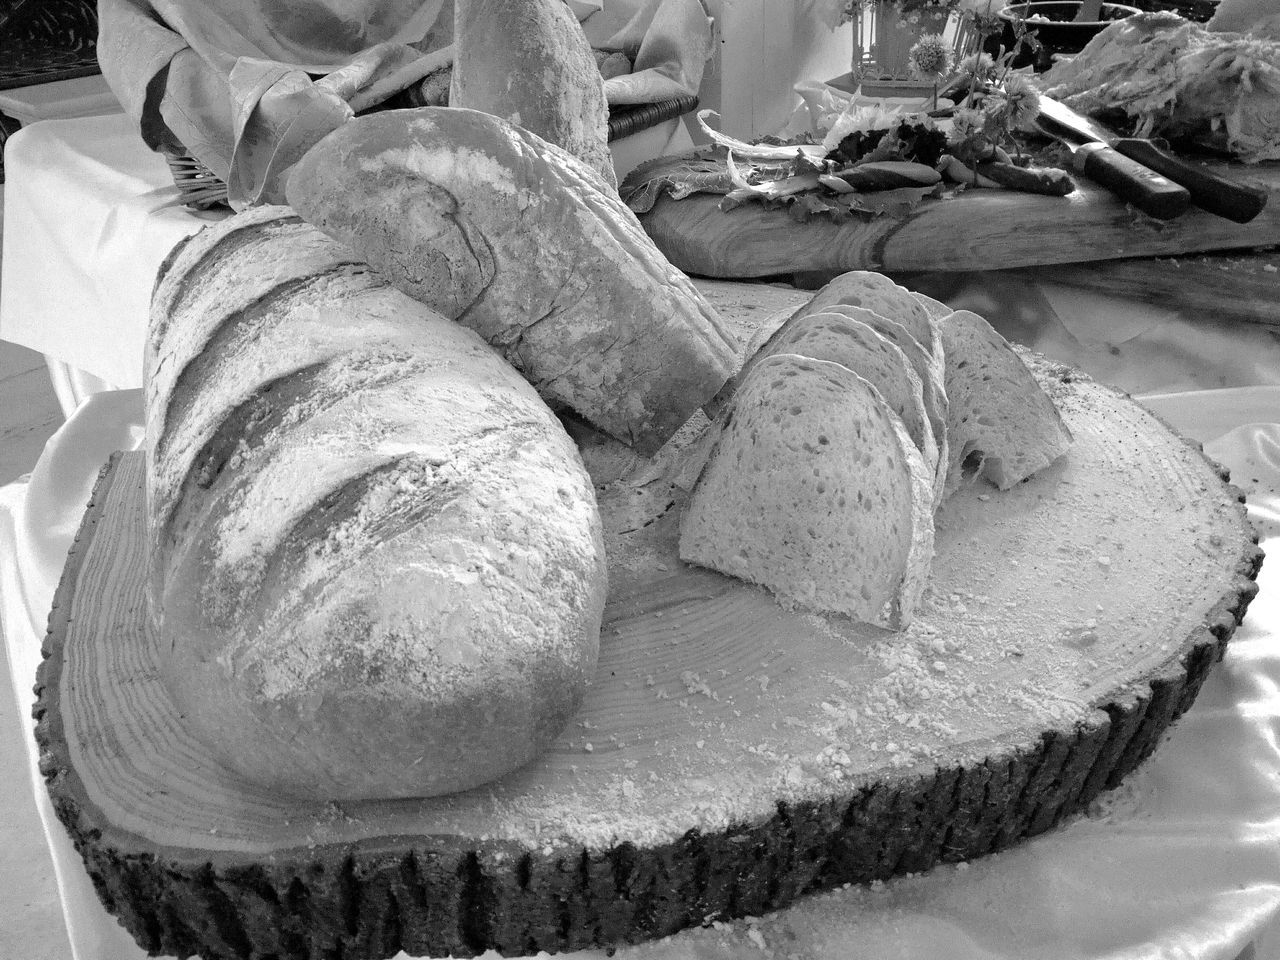 food, food and drink, bread, baked, freshness, ready-to-eat, close-up, no people, healthy eating, indoors, bakery, french food, loaf of bread, plate, day